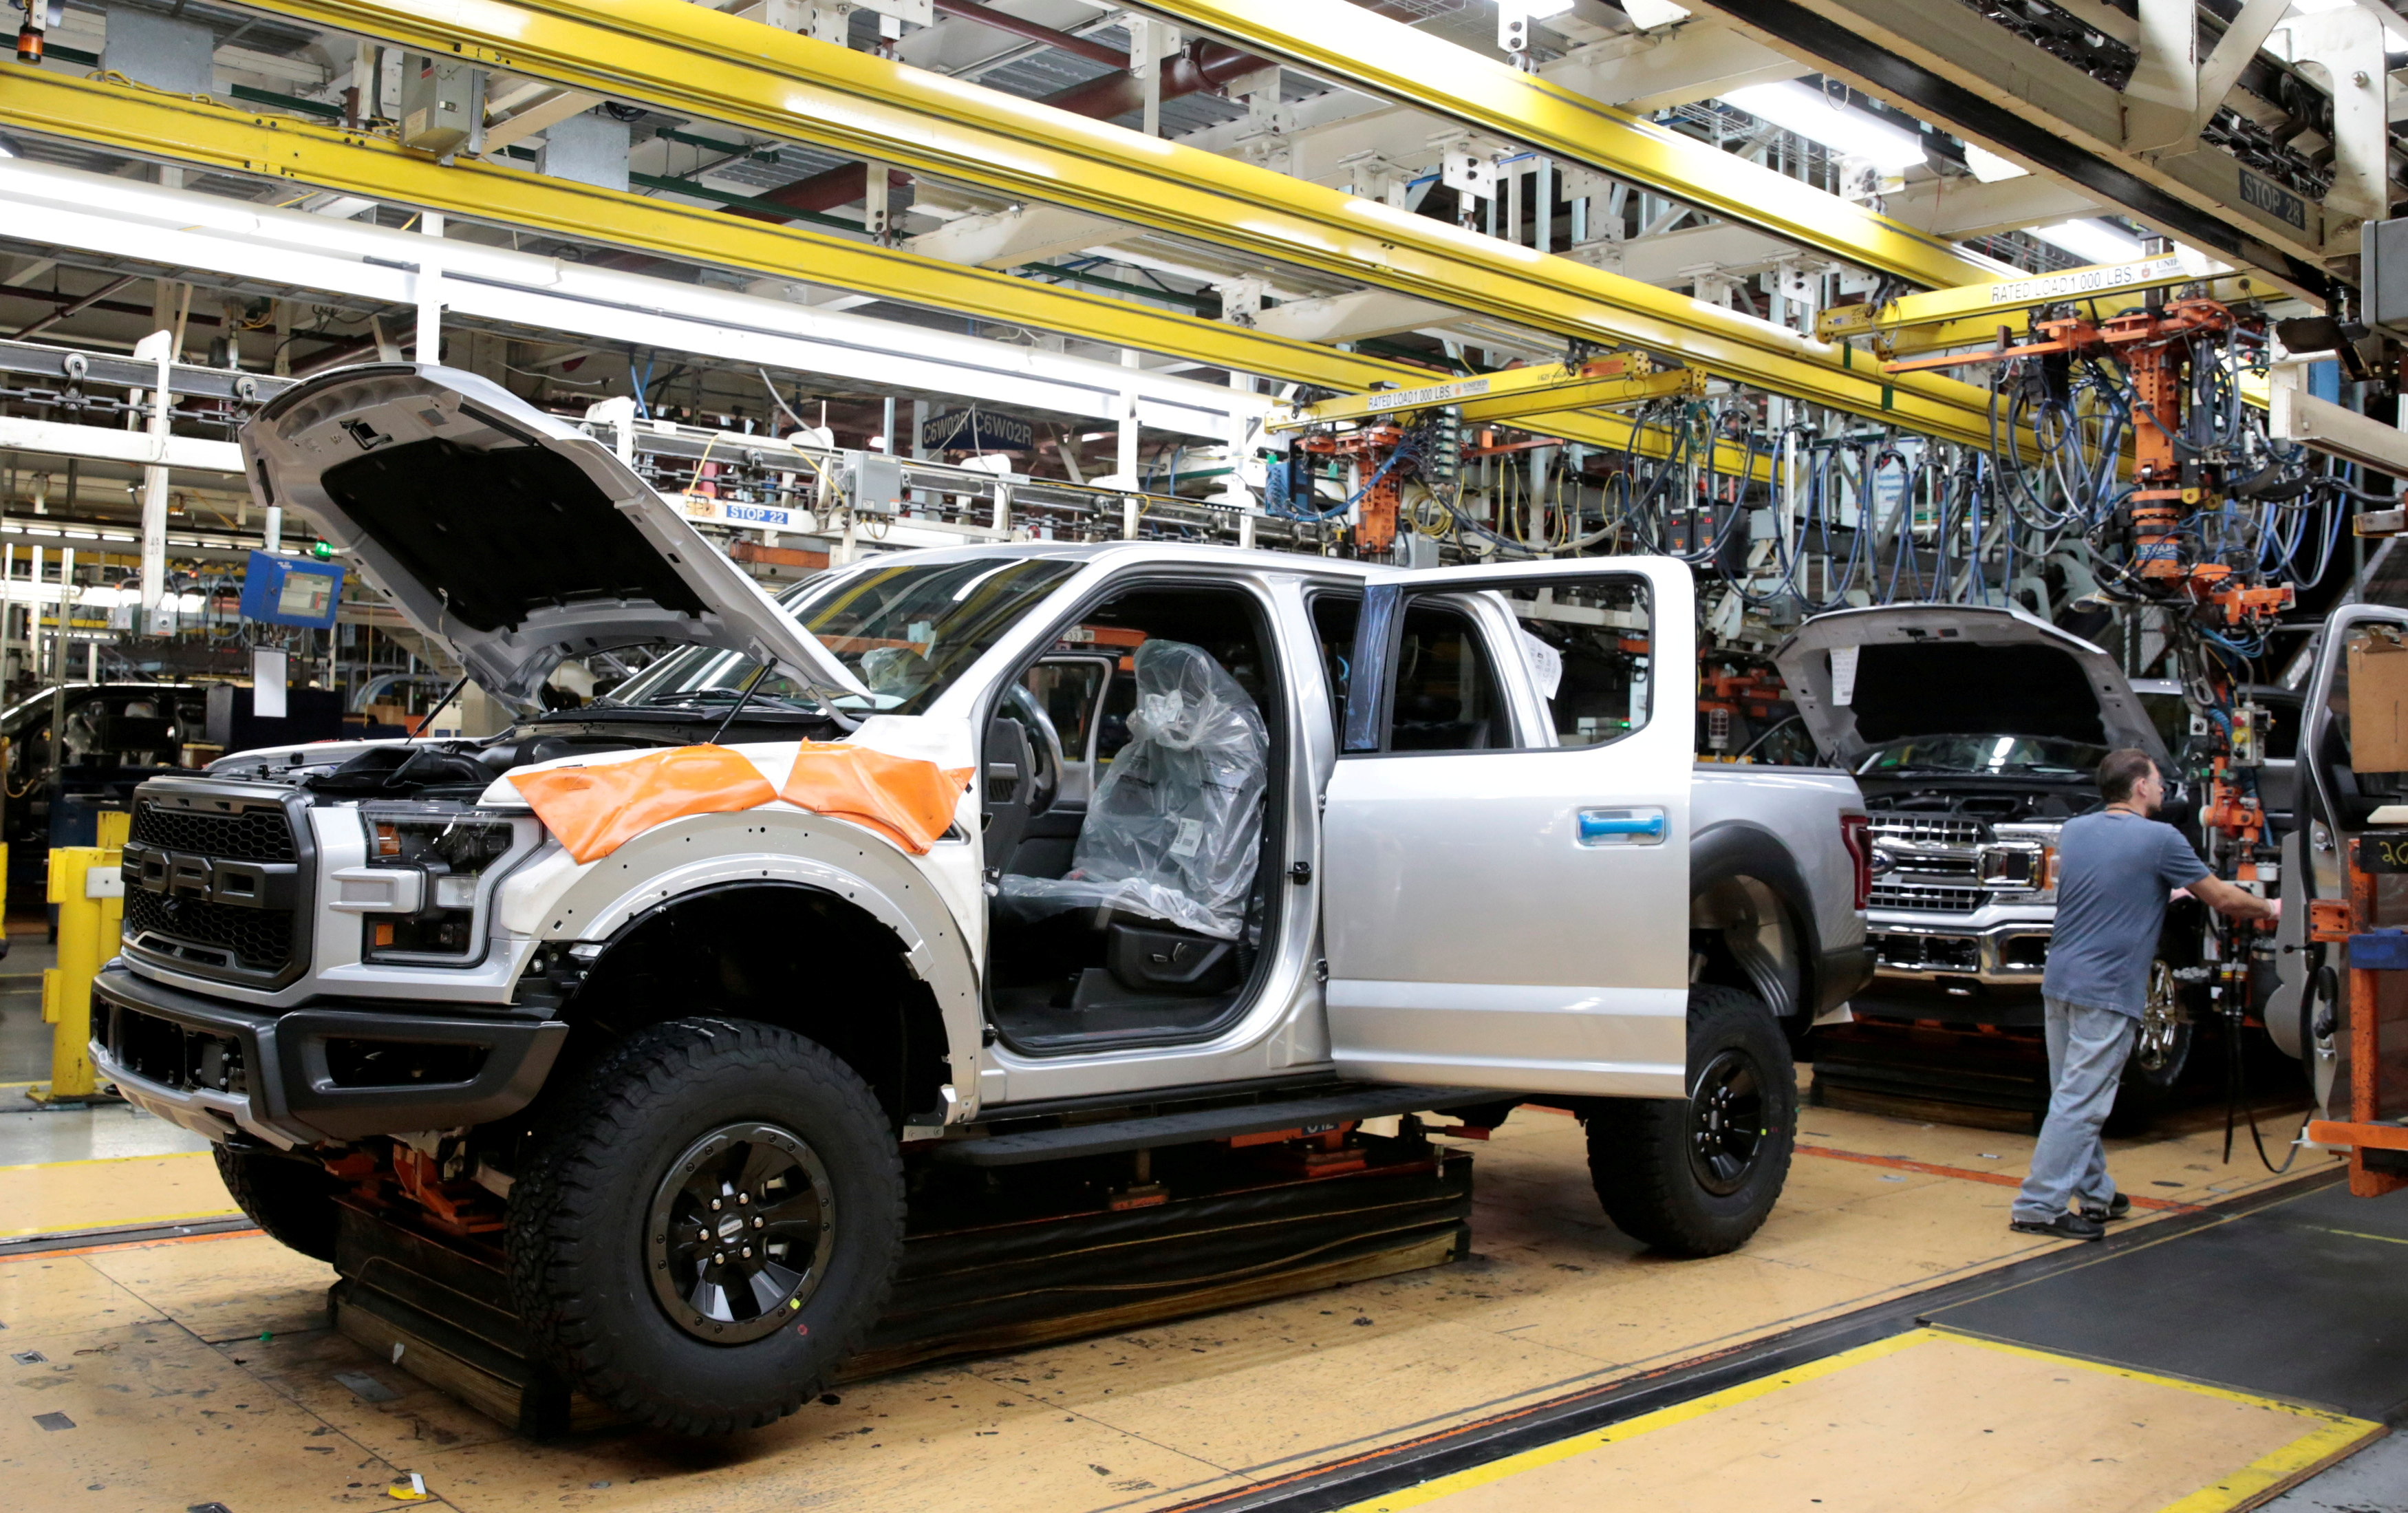 A Ford 2018 F150 pick-up truck moves down the assembly line at Ford's Dearborn Truck Plant during the 100-year celebration of the Ford River Rouge Complex in Dearborn, Michigan U.S. September 27, 2018.  REUTERS/Rebecca Cook